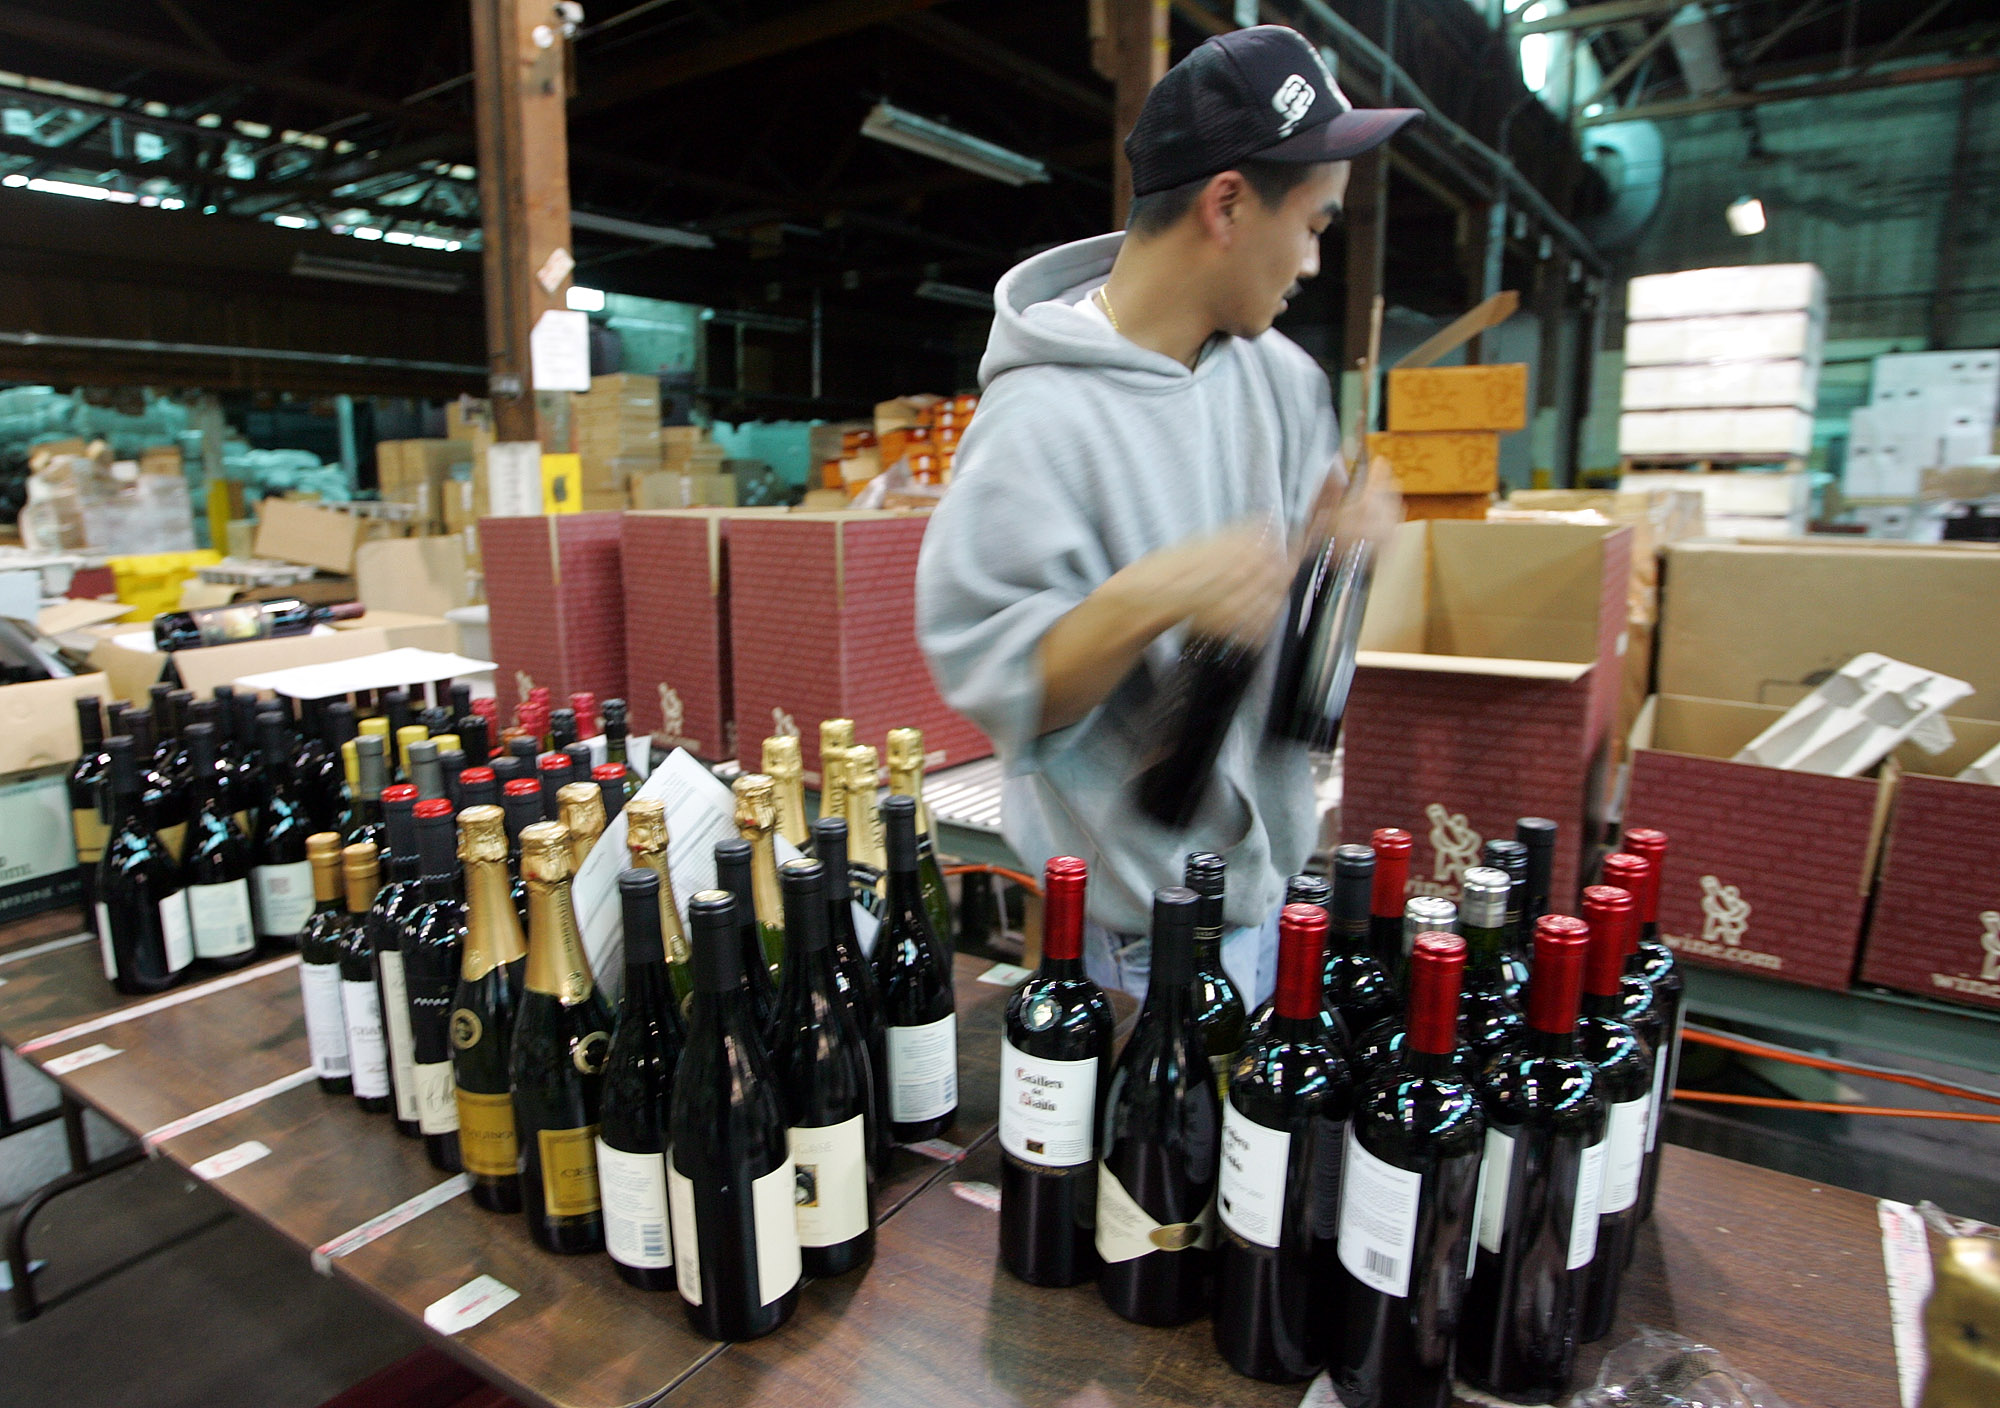 Washington is for wine-lovers: D.C. No. 1 for direct shipments